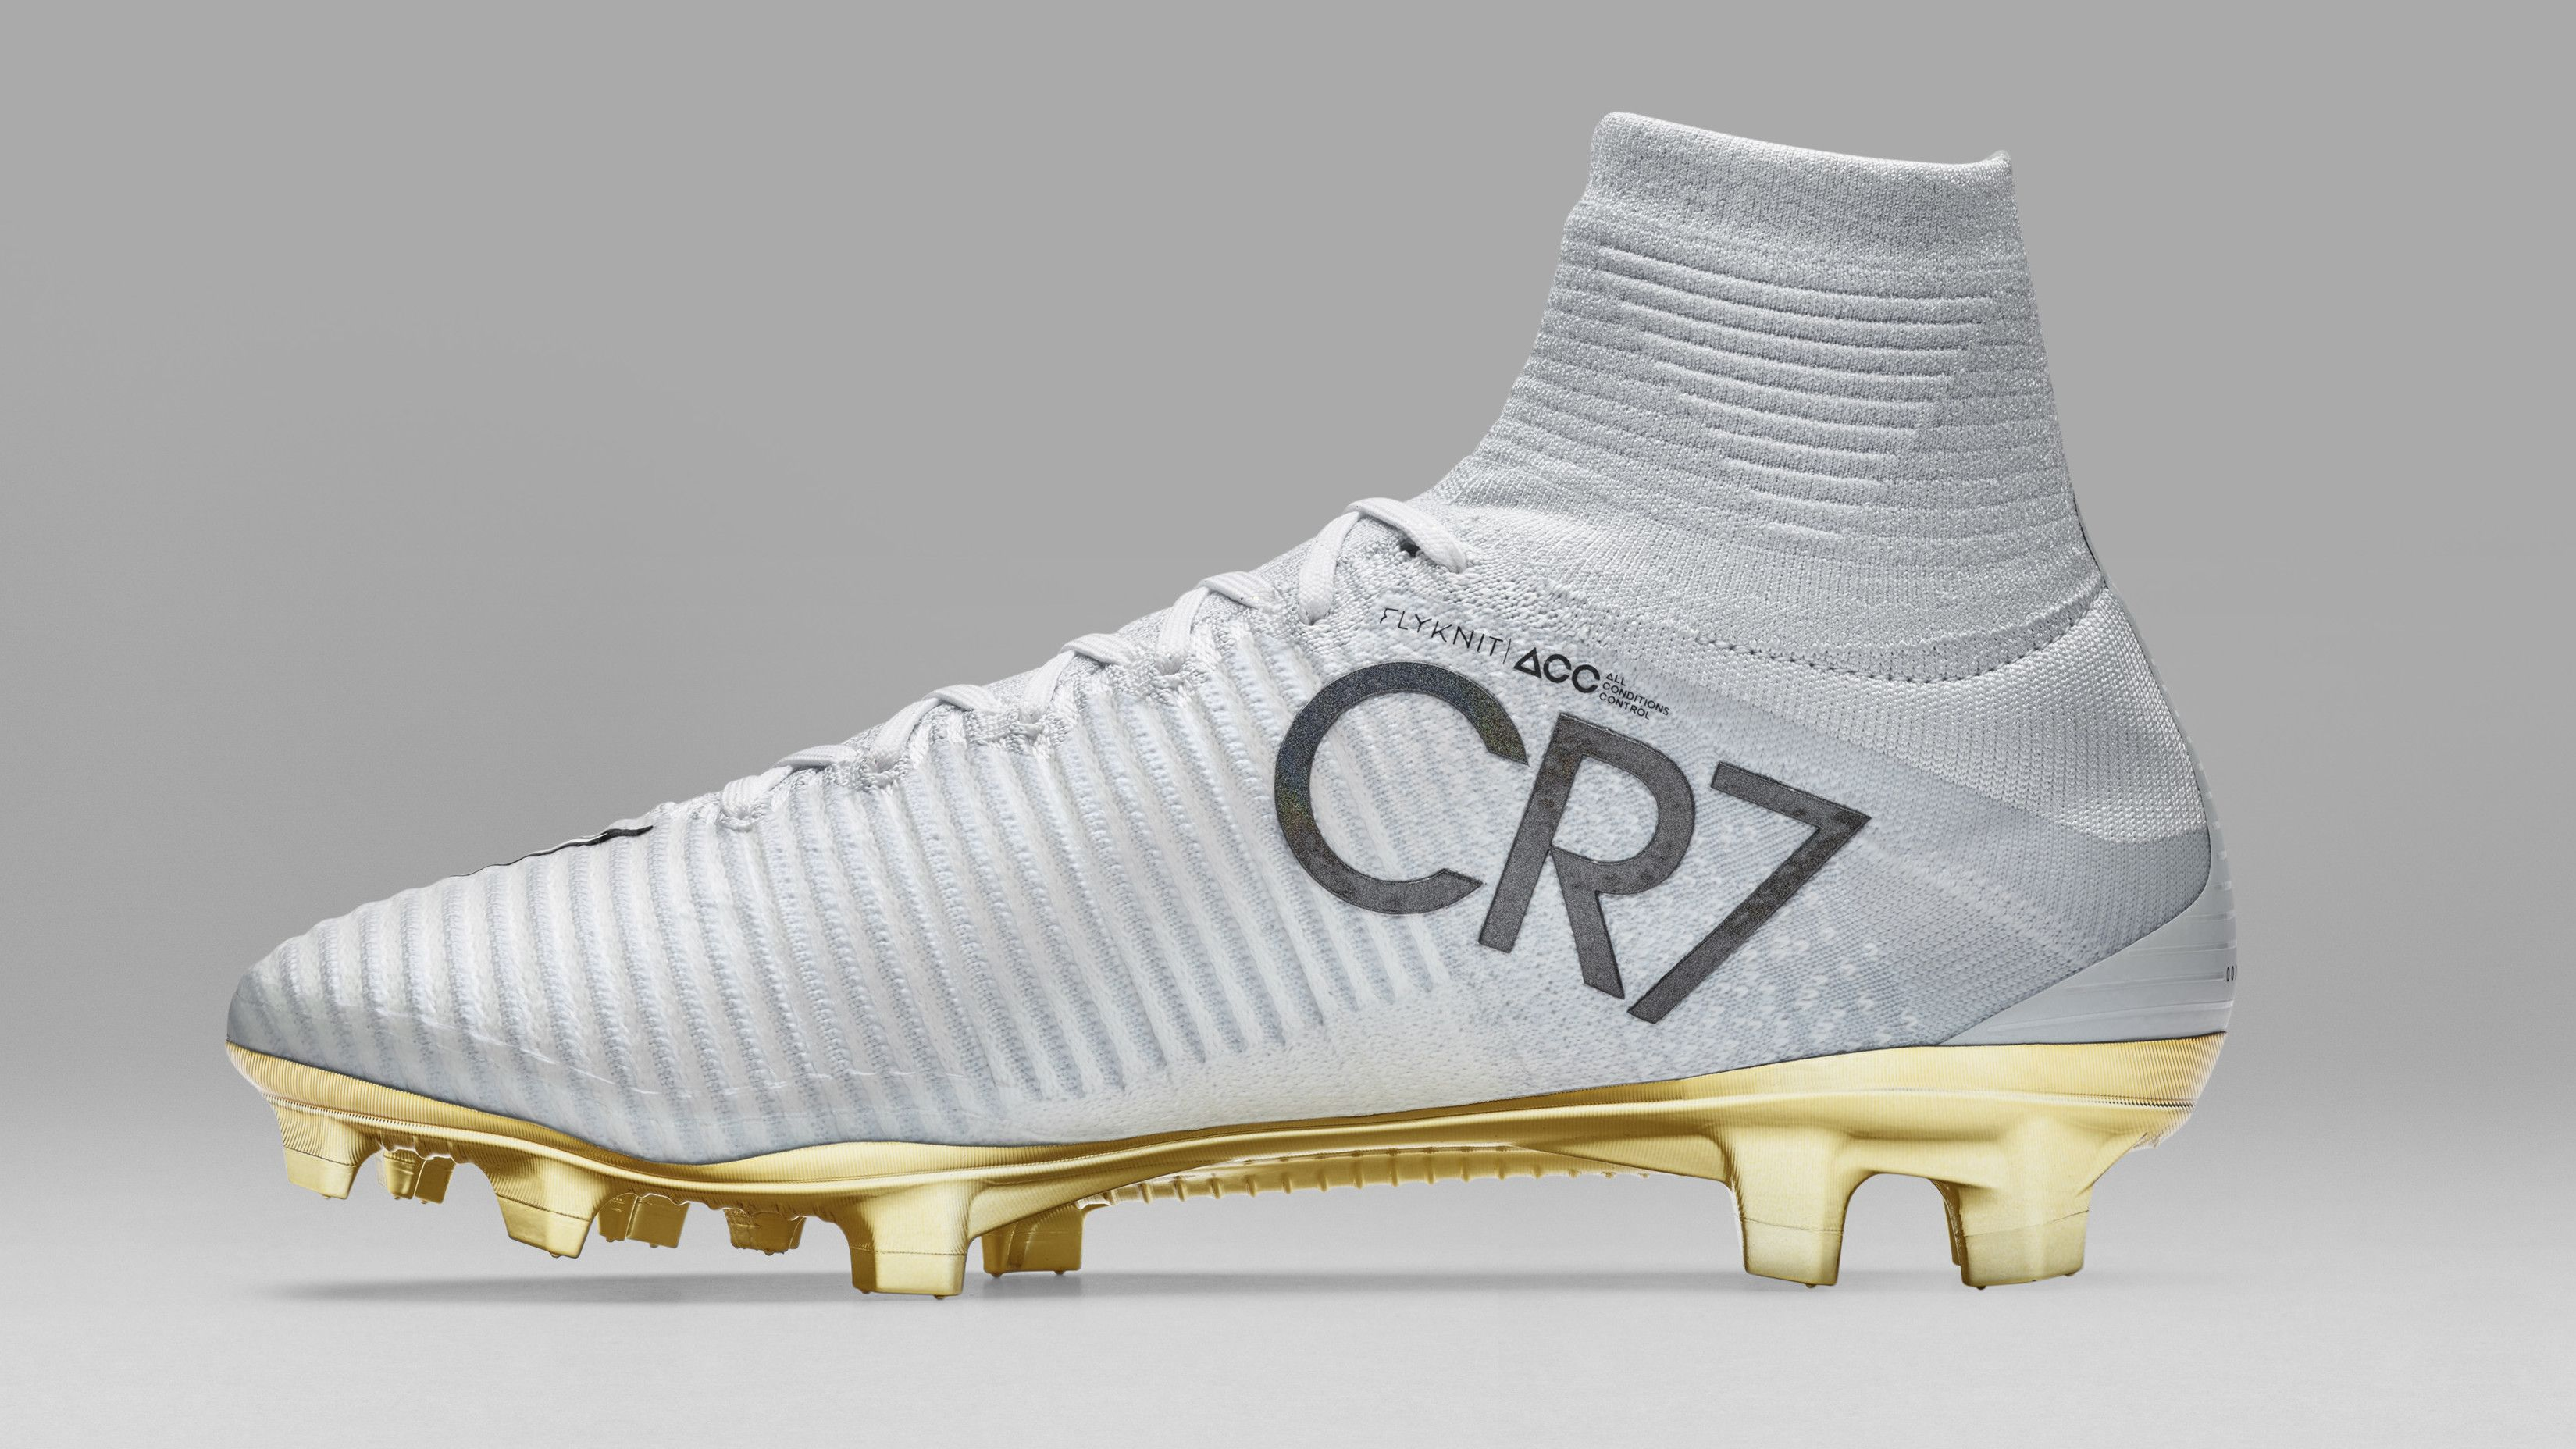 96e09cfbd Nike Mercurial Superfly CR7 Vitorias medial